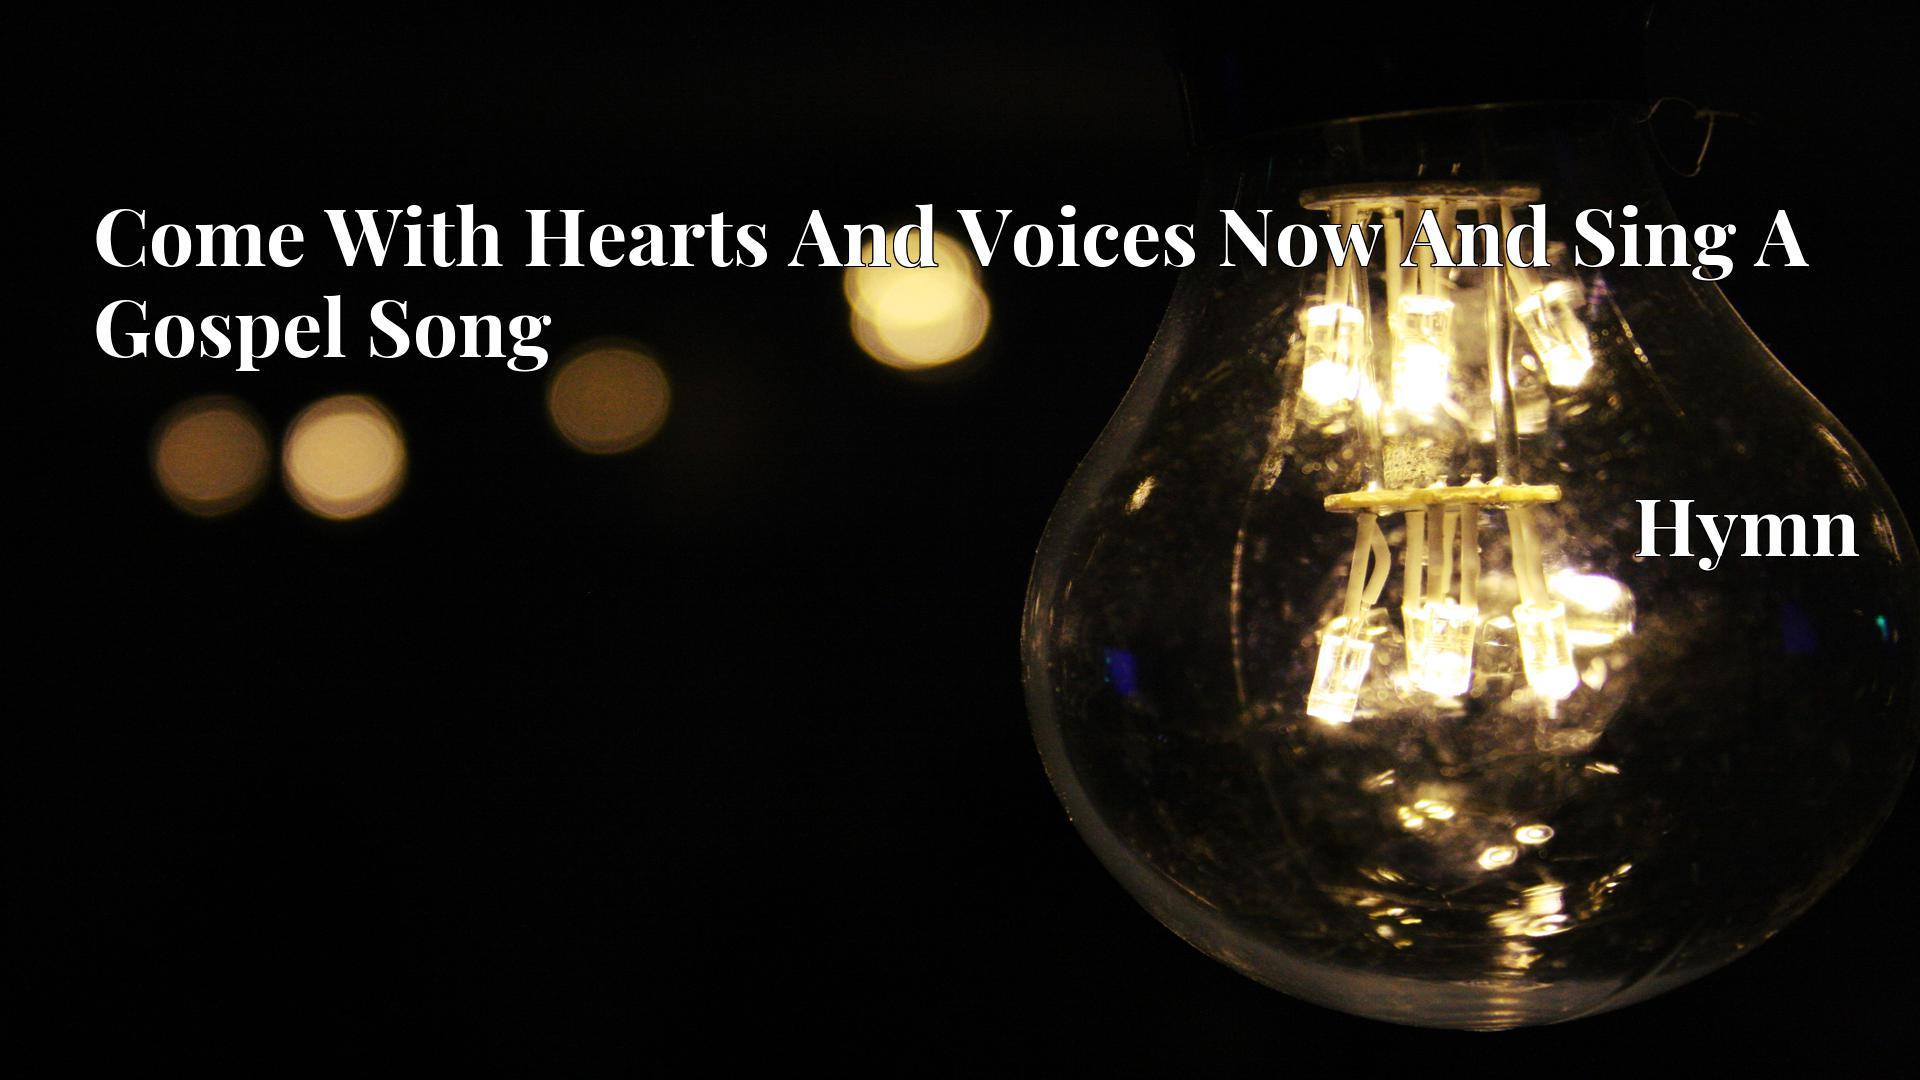 Come With Hearts And Voices Now And Sing A Gospel Song - Hymn